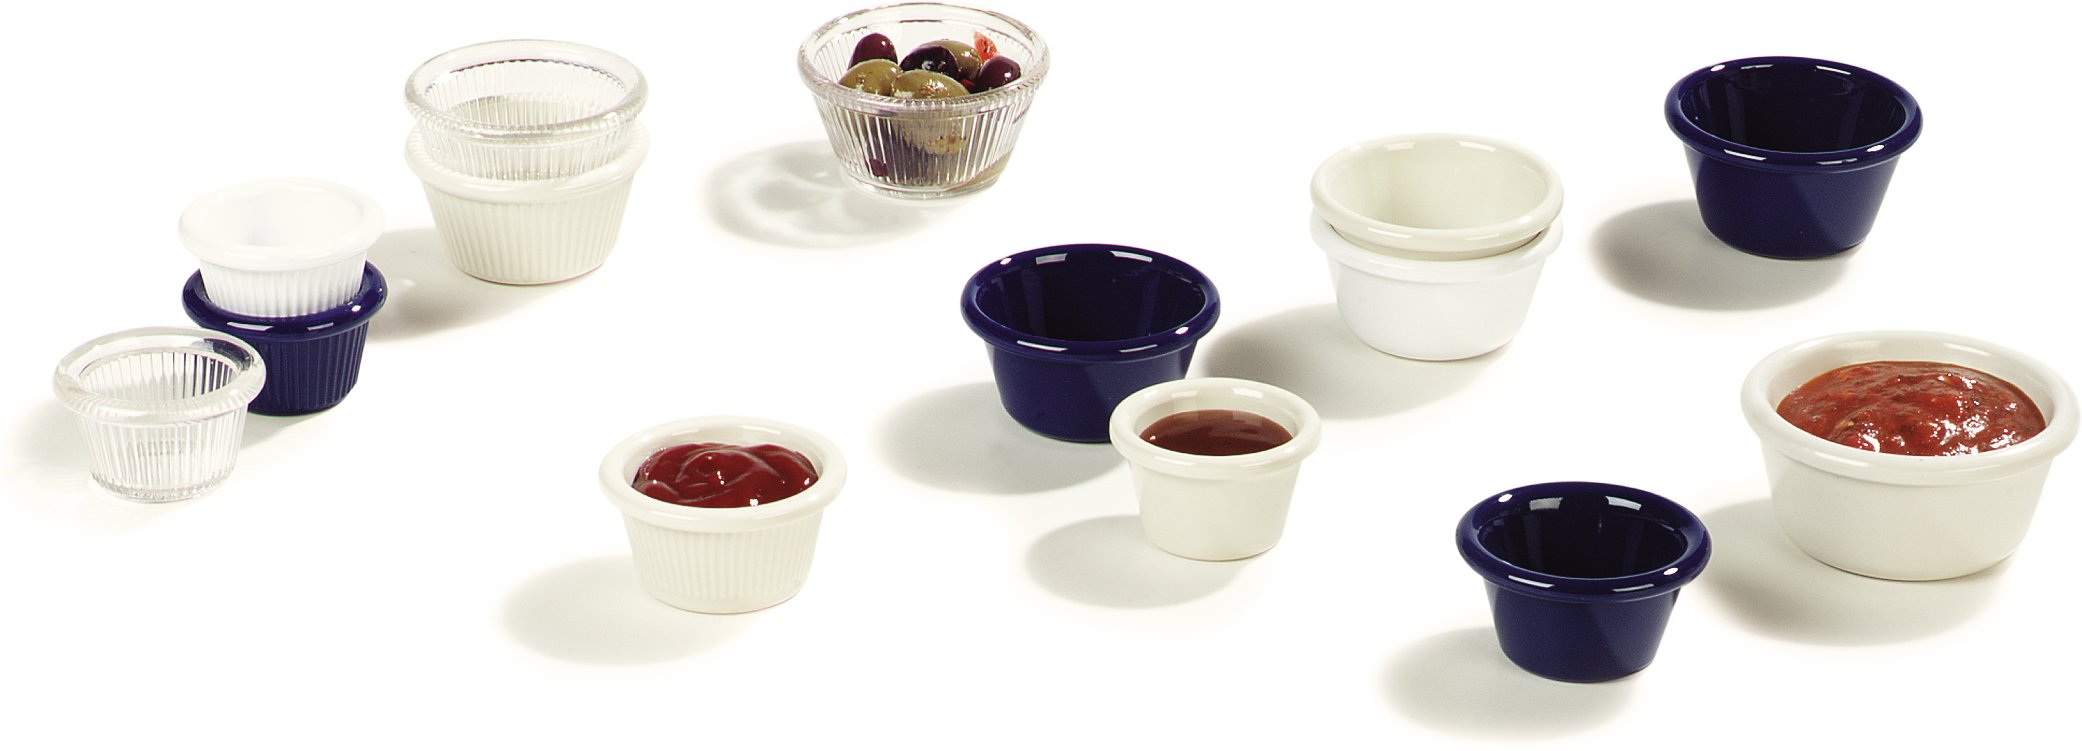 Carlisle 4312603 SAN Smooth Ramekin, 6 oz Capacity, 1.80'' Height, Black (Case of 48) by Carlisle (Image #8)